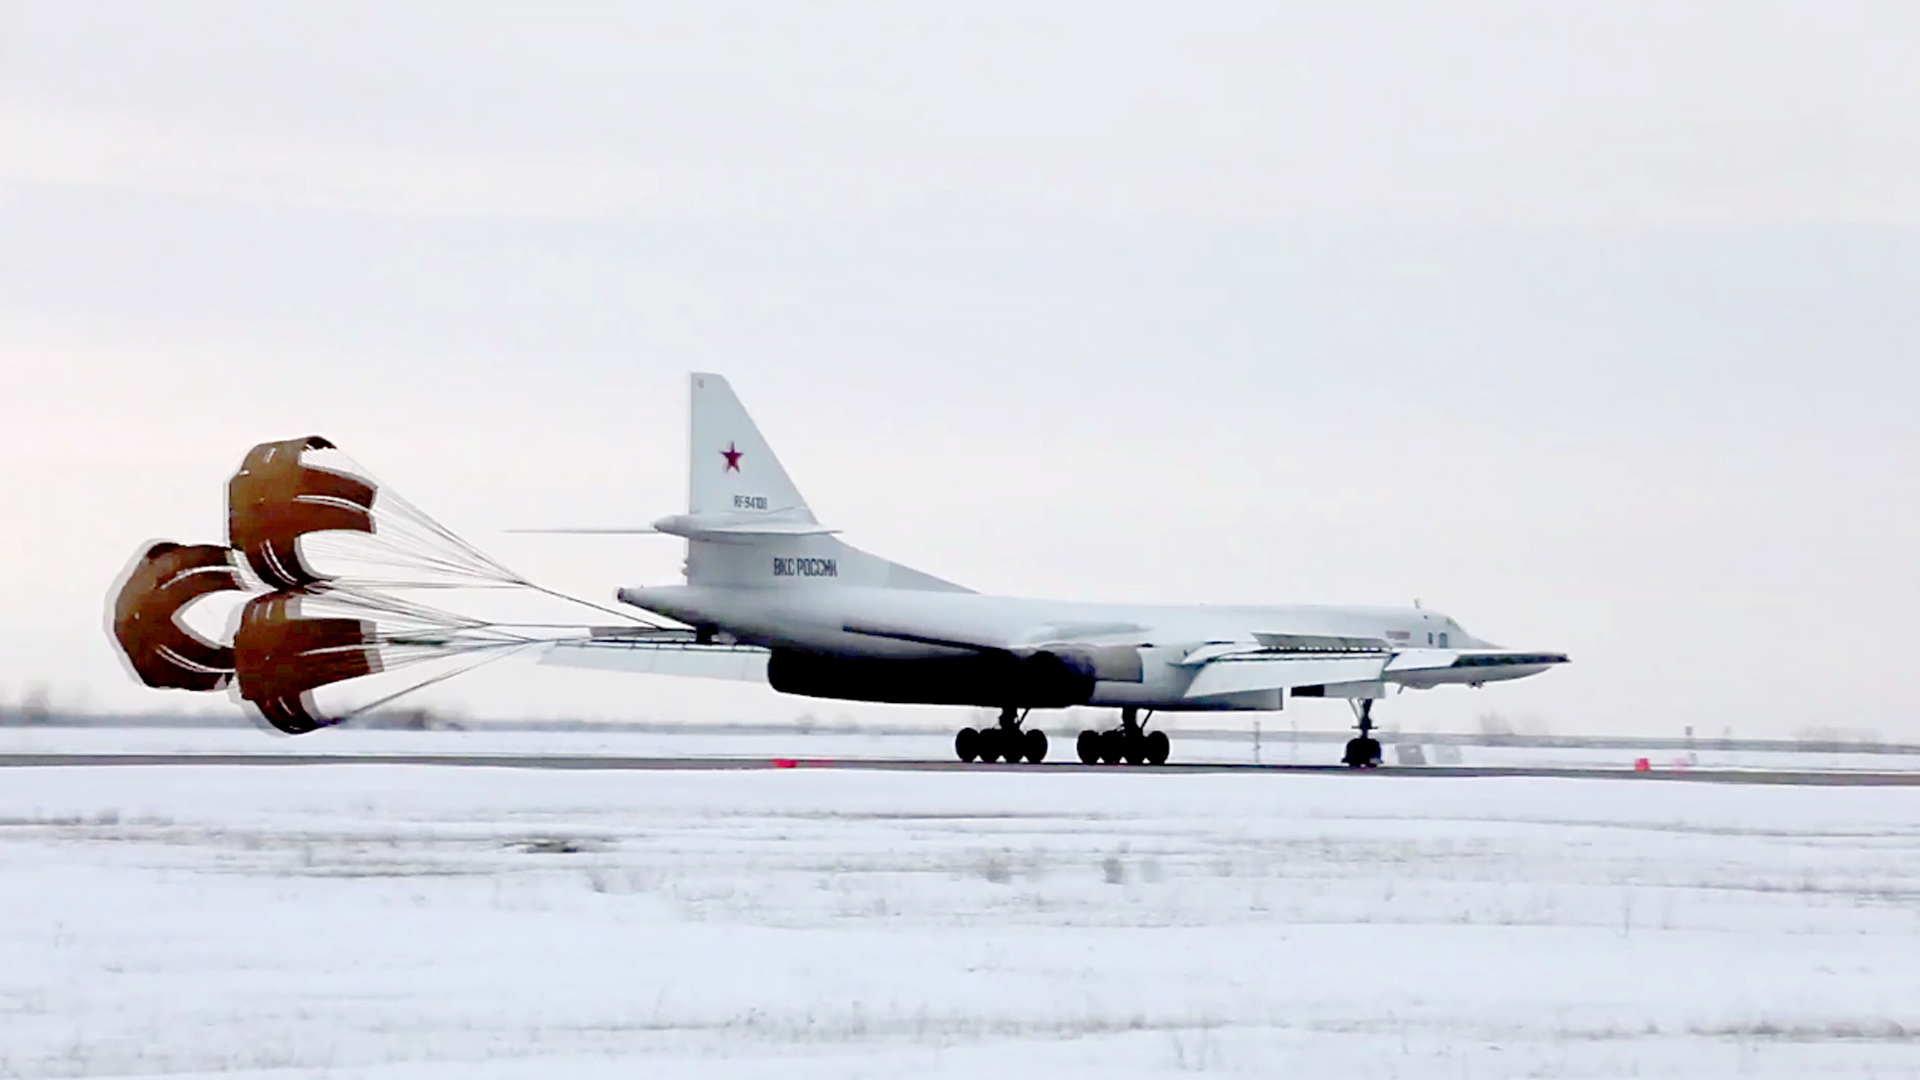 Video: Russian Aerospace Forces Conduct Strategic Bomber Flights In Recent Training